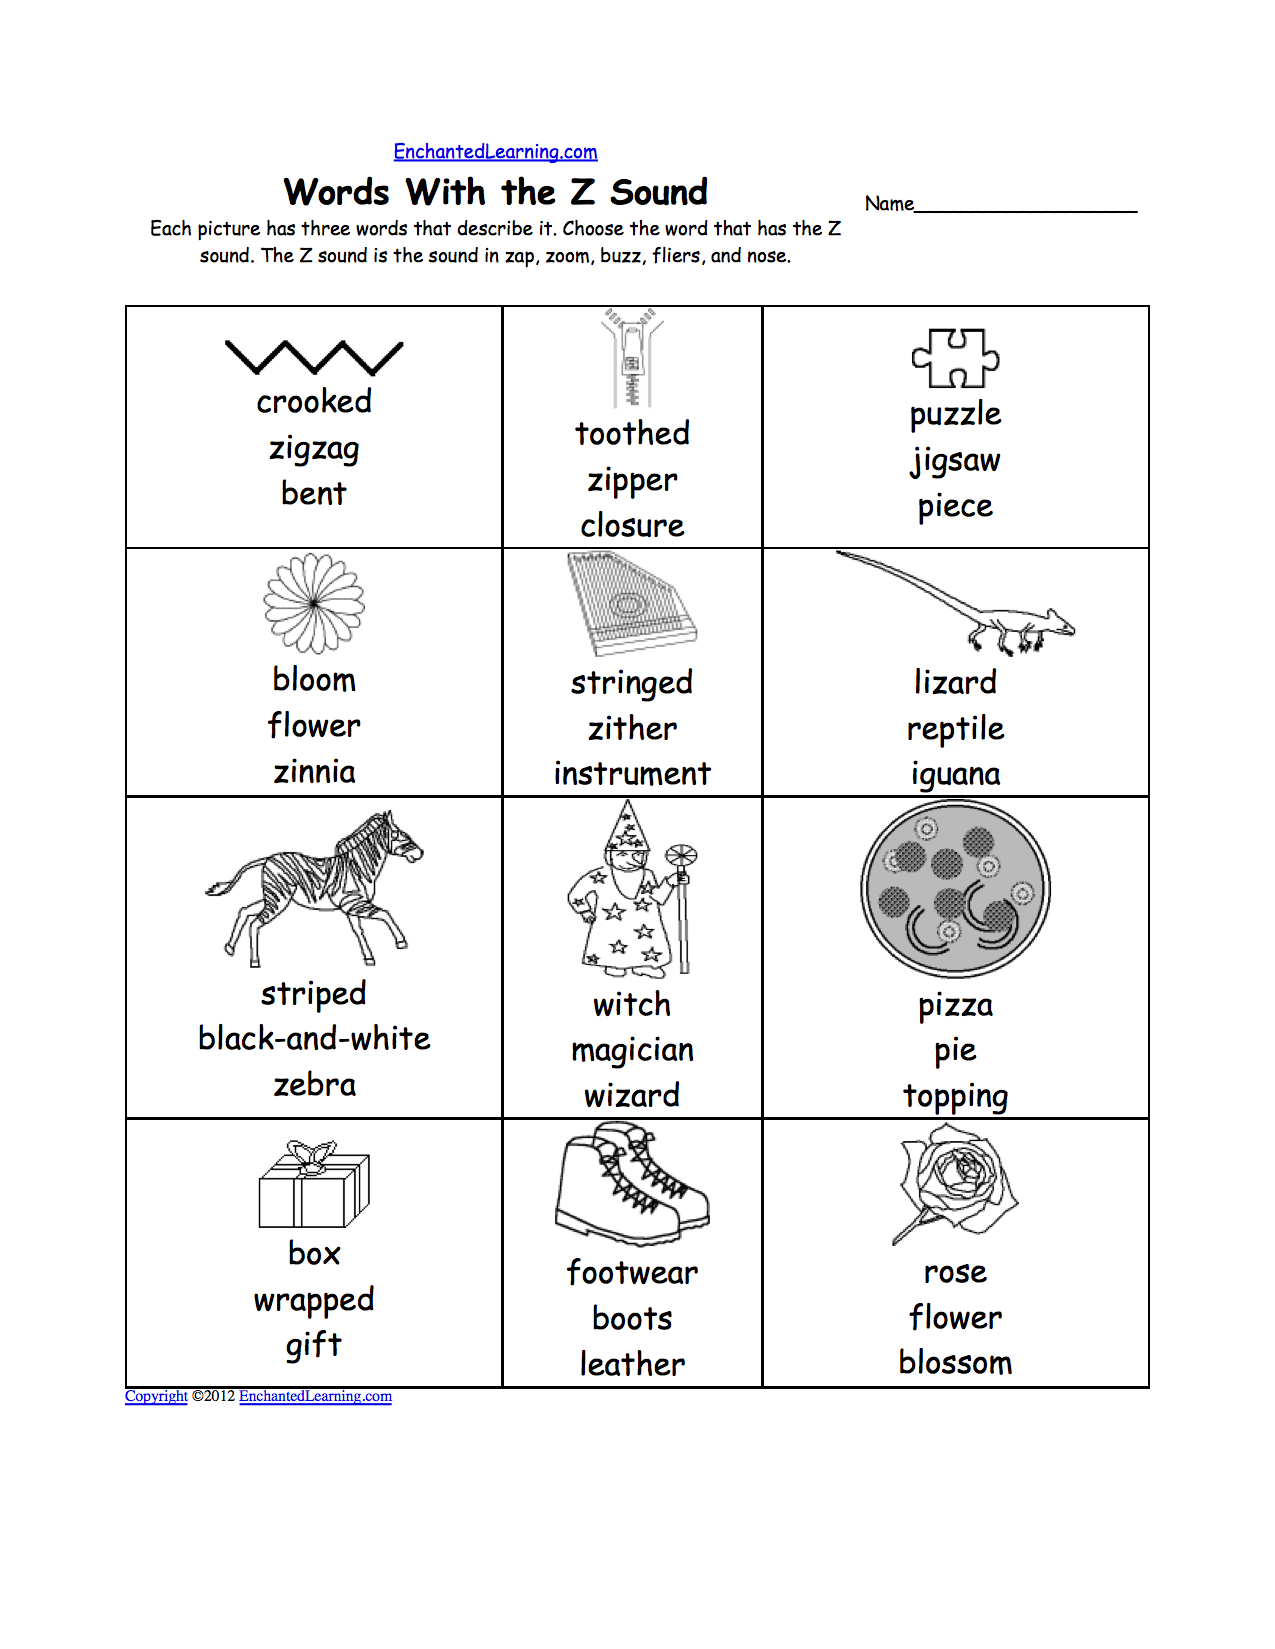 Aldiablosus  Marvelous Phonics Worksheets Multiple Choice Worksheets To Print  With Fascinating Phonics Worksheets Multiple Choice Worksheets To Print  Enchantedlearningcom With Attractive Phonics Worksheets Ee Sound Also Topographic Map Worksheet Pdf In Addition Financial Needs Analysis Worksheet And James And The Giant Peach Worksheets Free As Well As Phet Balancing Chemical Equations Worksheet Additionally Observing And Inferring Worksheet From Enchantedlearningcom With Aldiablosus  Fascinating Phonics Worksheets Multiple Choice Worksheets To Print  With Attractive Phonics Worksheets Multiple Choice Worksheets To Print  Enchantedlearningcom And Marvelous Phonics Worksheets Ee Sound Also Topographic Map Worksheet Pdf In Addition Financial Needs Analysis Worksheet From Enchantedlearningcom